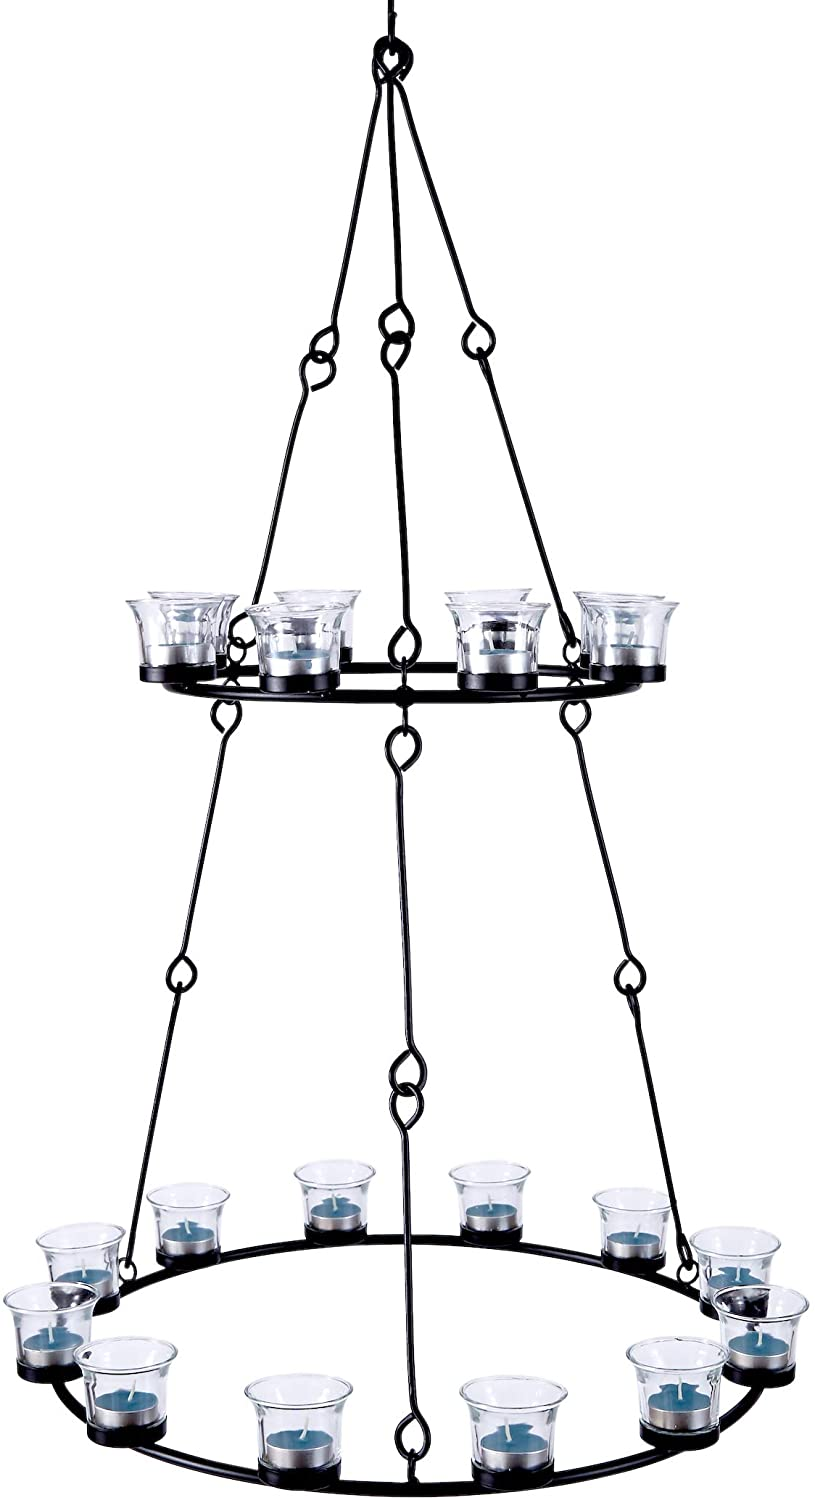 2 tier chandelier for bell tents